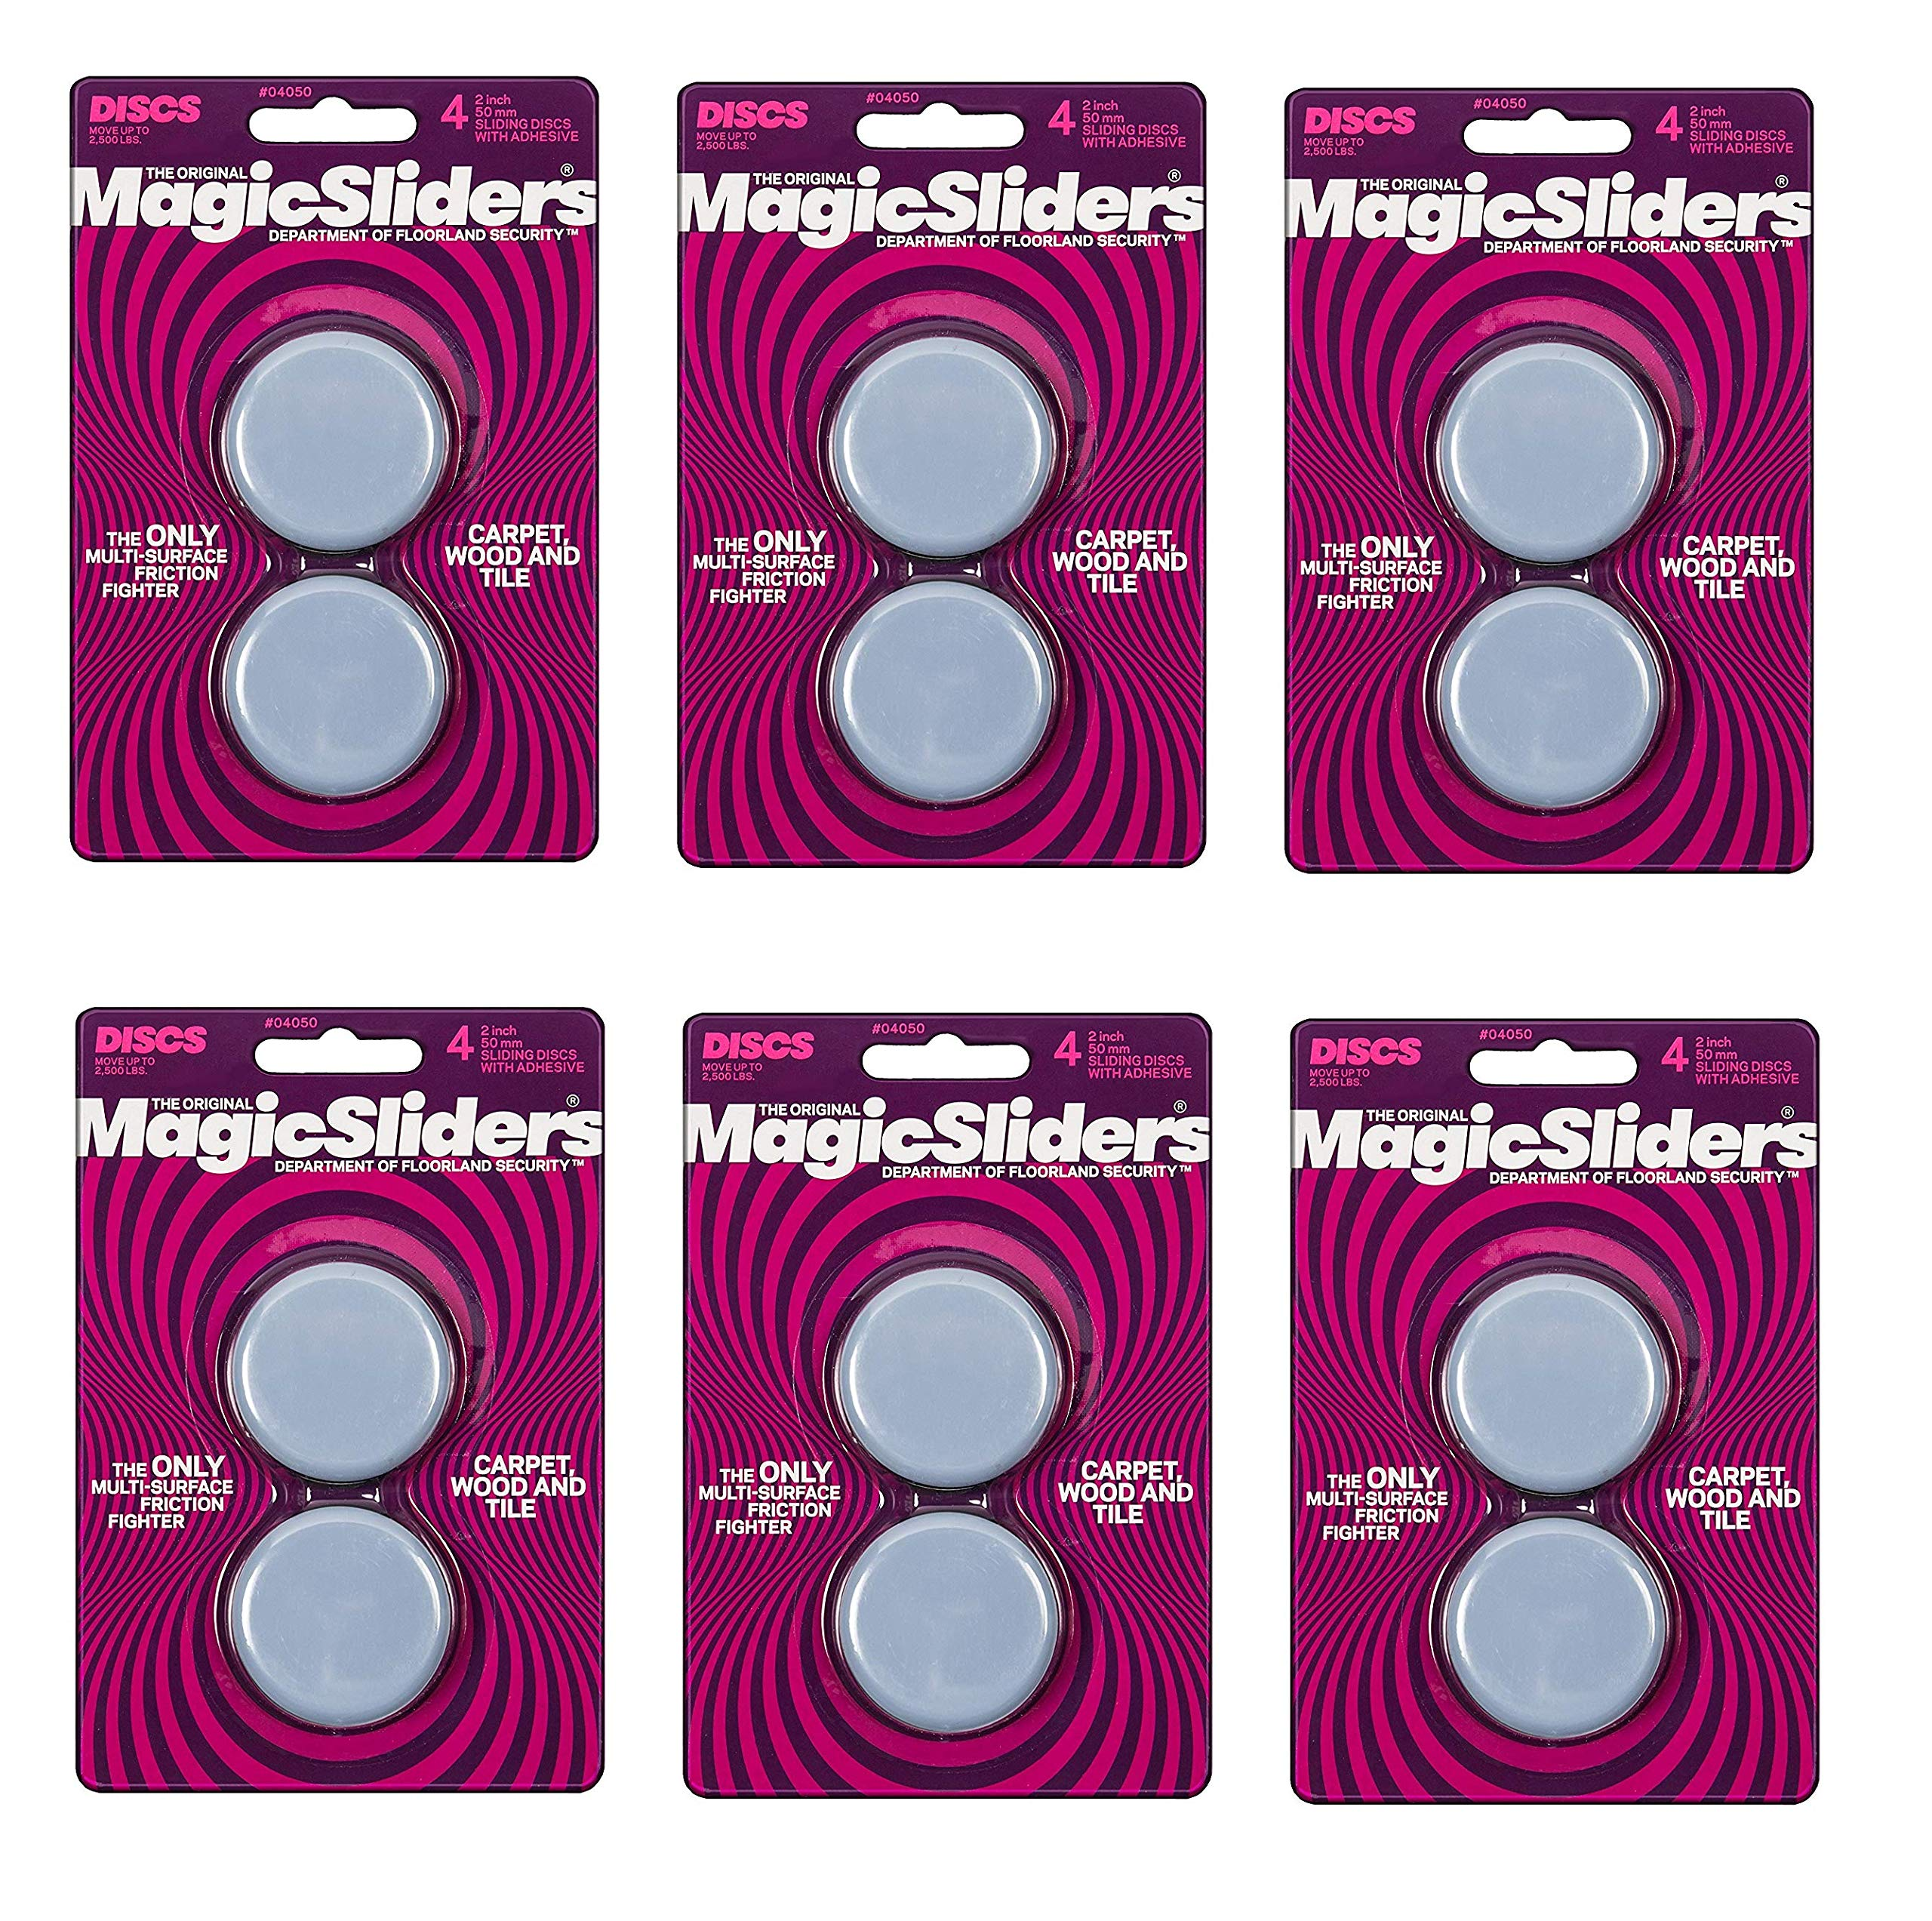 MAGIC SLIDERS L P 4050 2'' RND Sliding Disc, Sold as 6 Pack, 24 Count Total